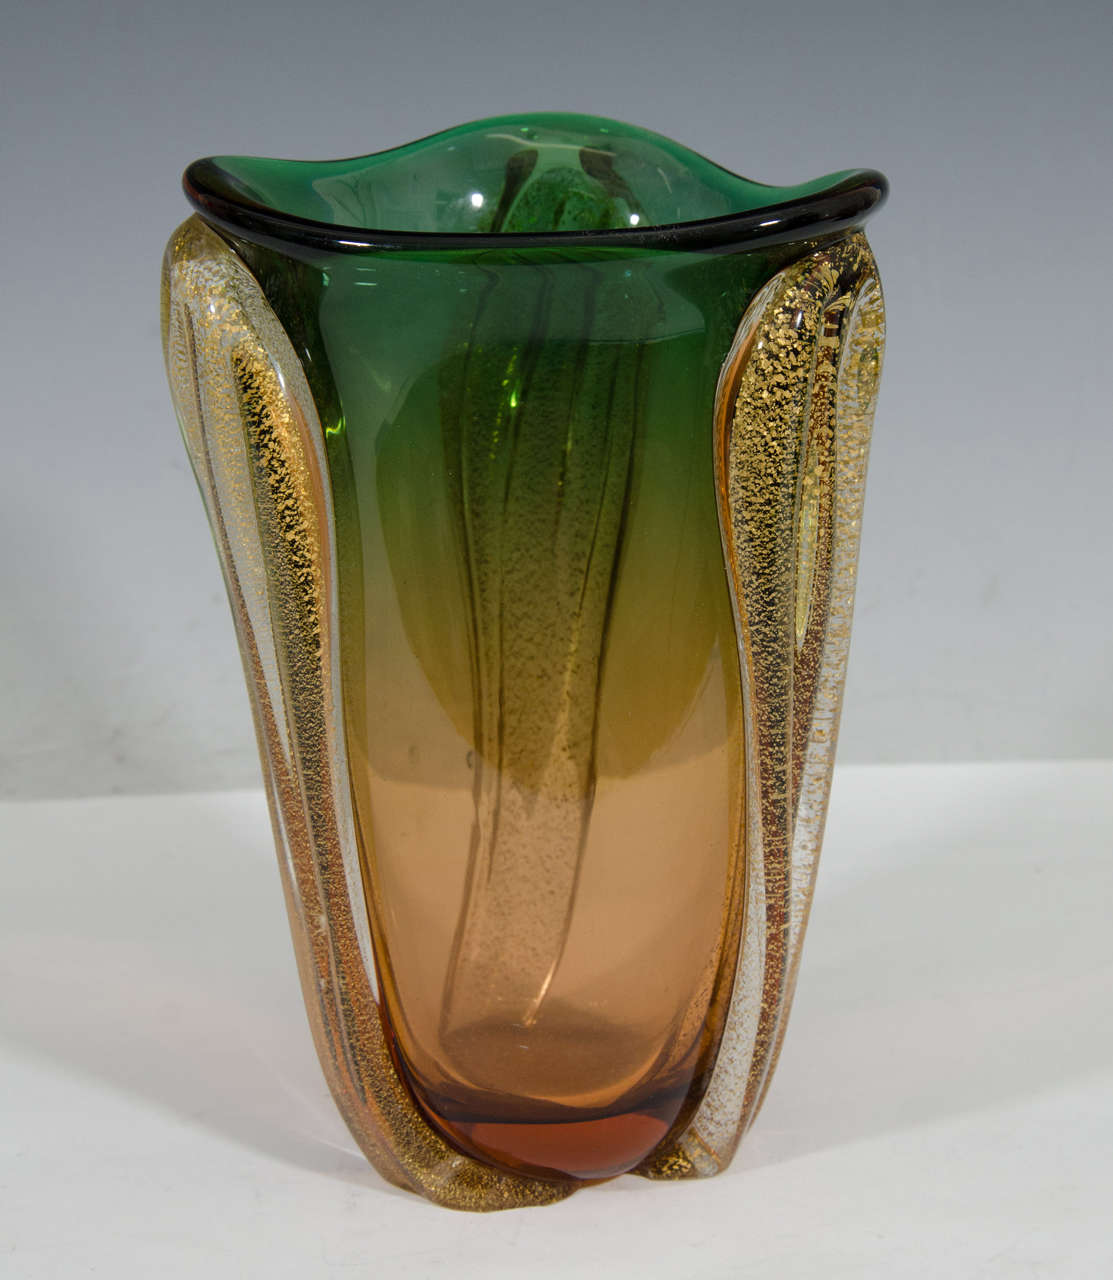 Midcentury murano glass vase in green and amber with gold leaf for a vintage murano glass pointed vase produced in italy circa 1950s 1960s in reviewsmspy